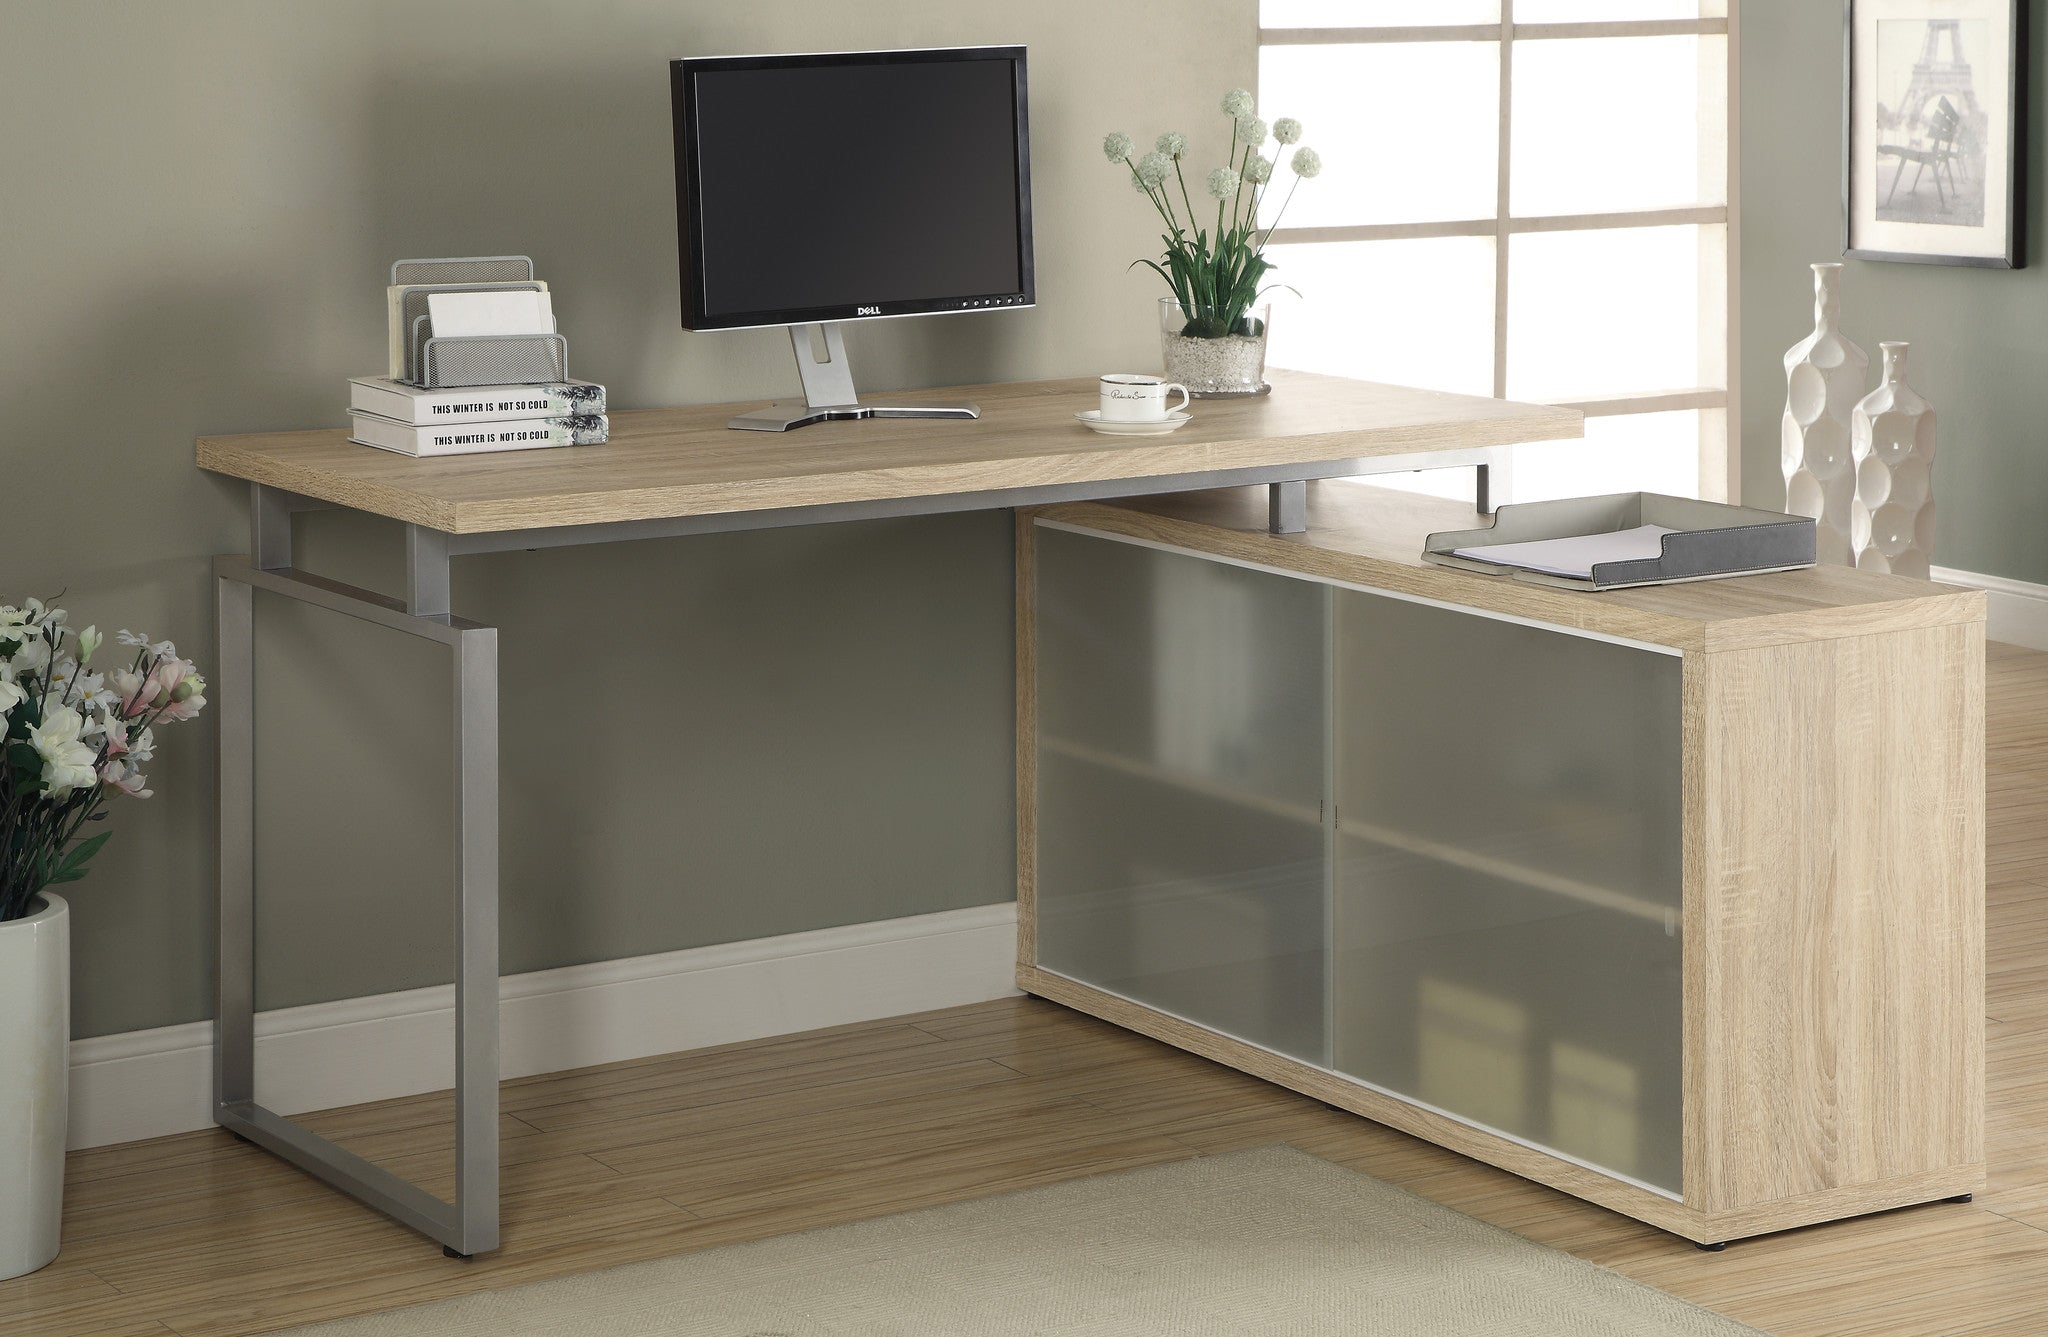 Natural Corner Computer Desk with Frosted Glass